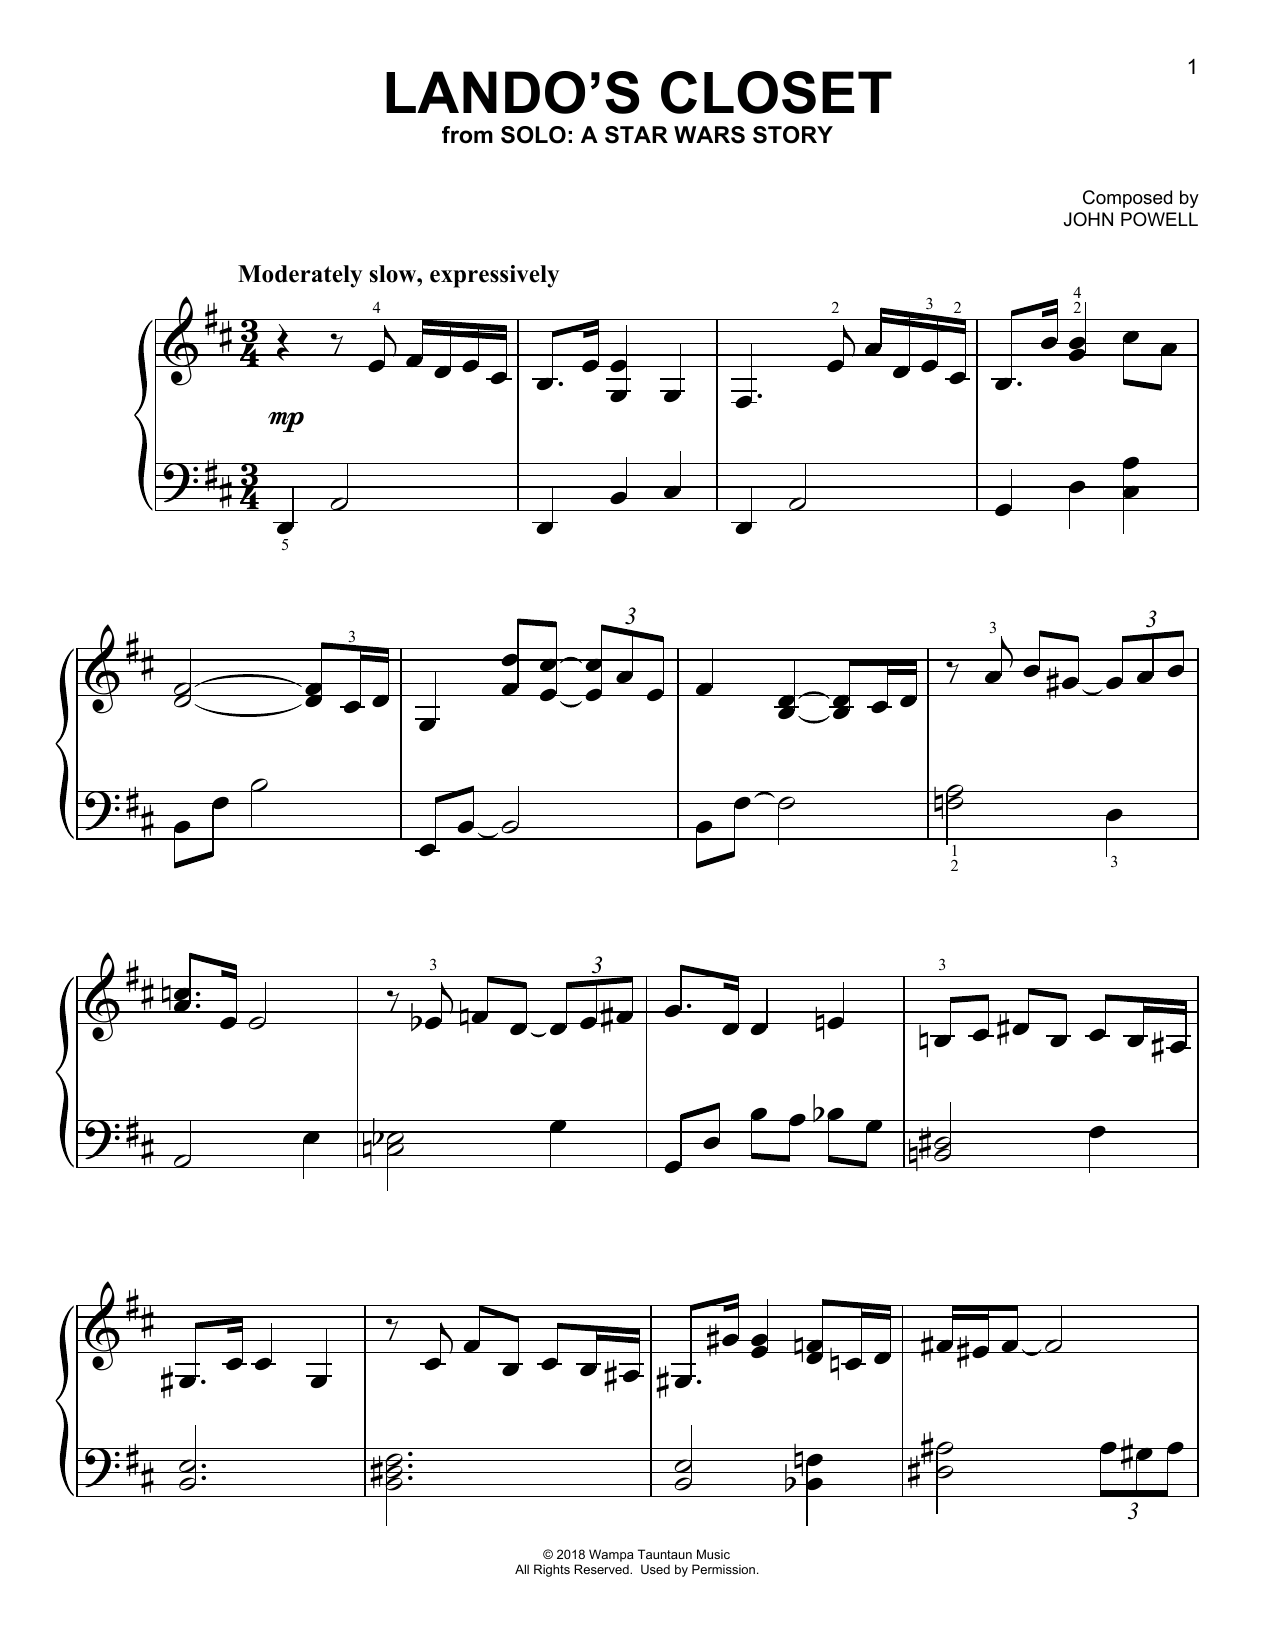 John Powell Lando's Closet (from Solo: A Star Wars Story) sheet music notes and chords